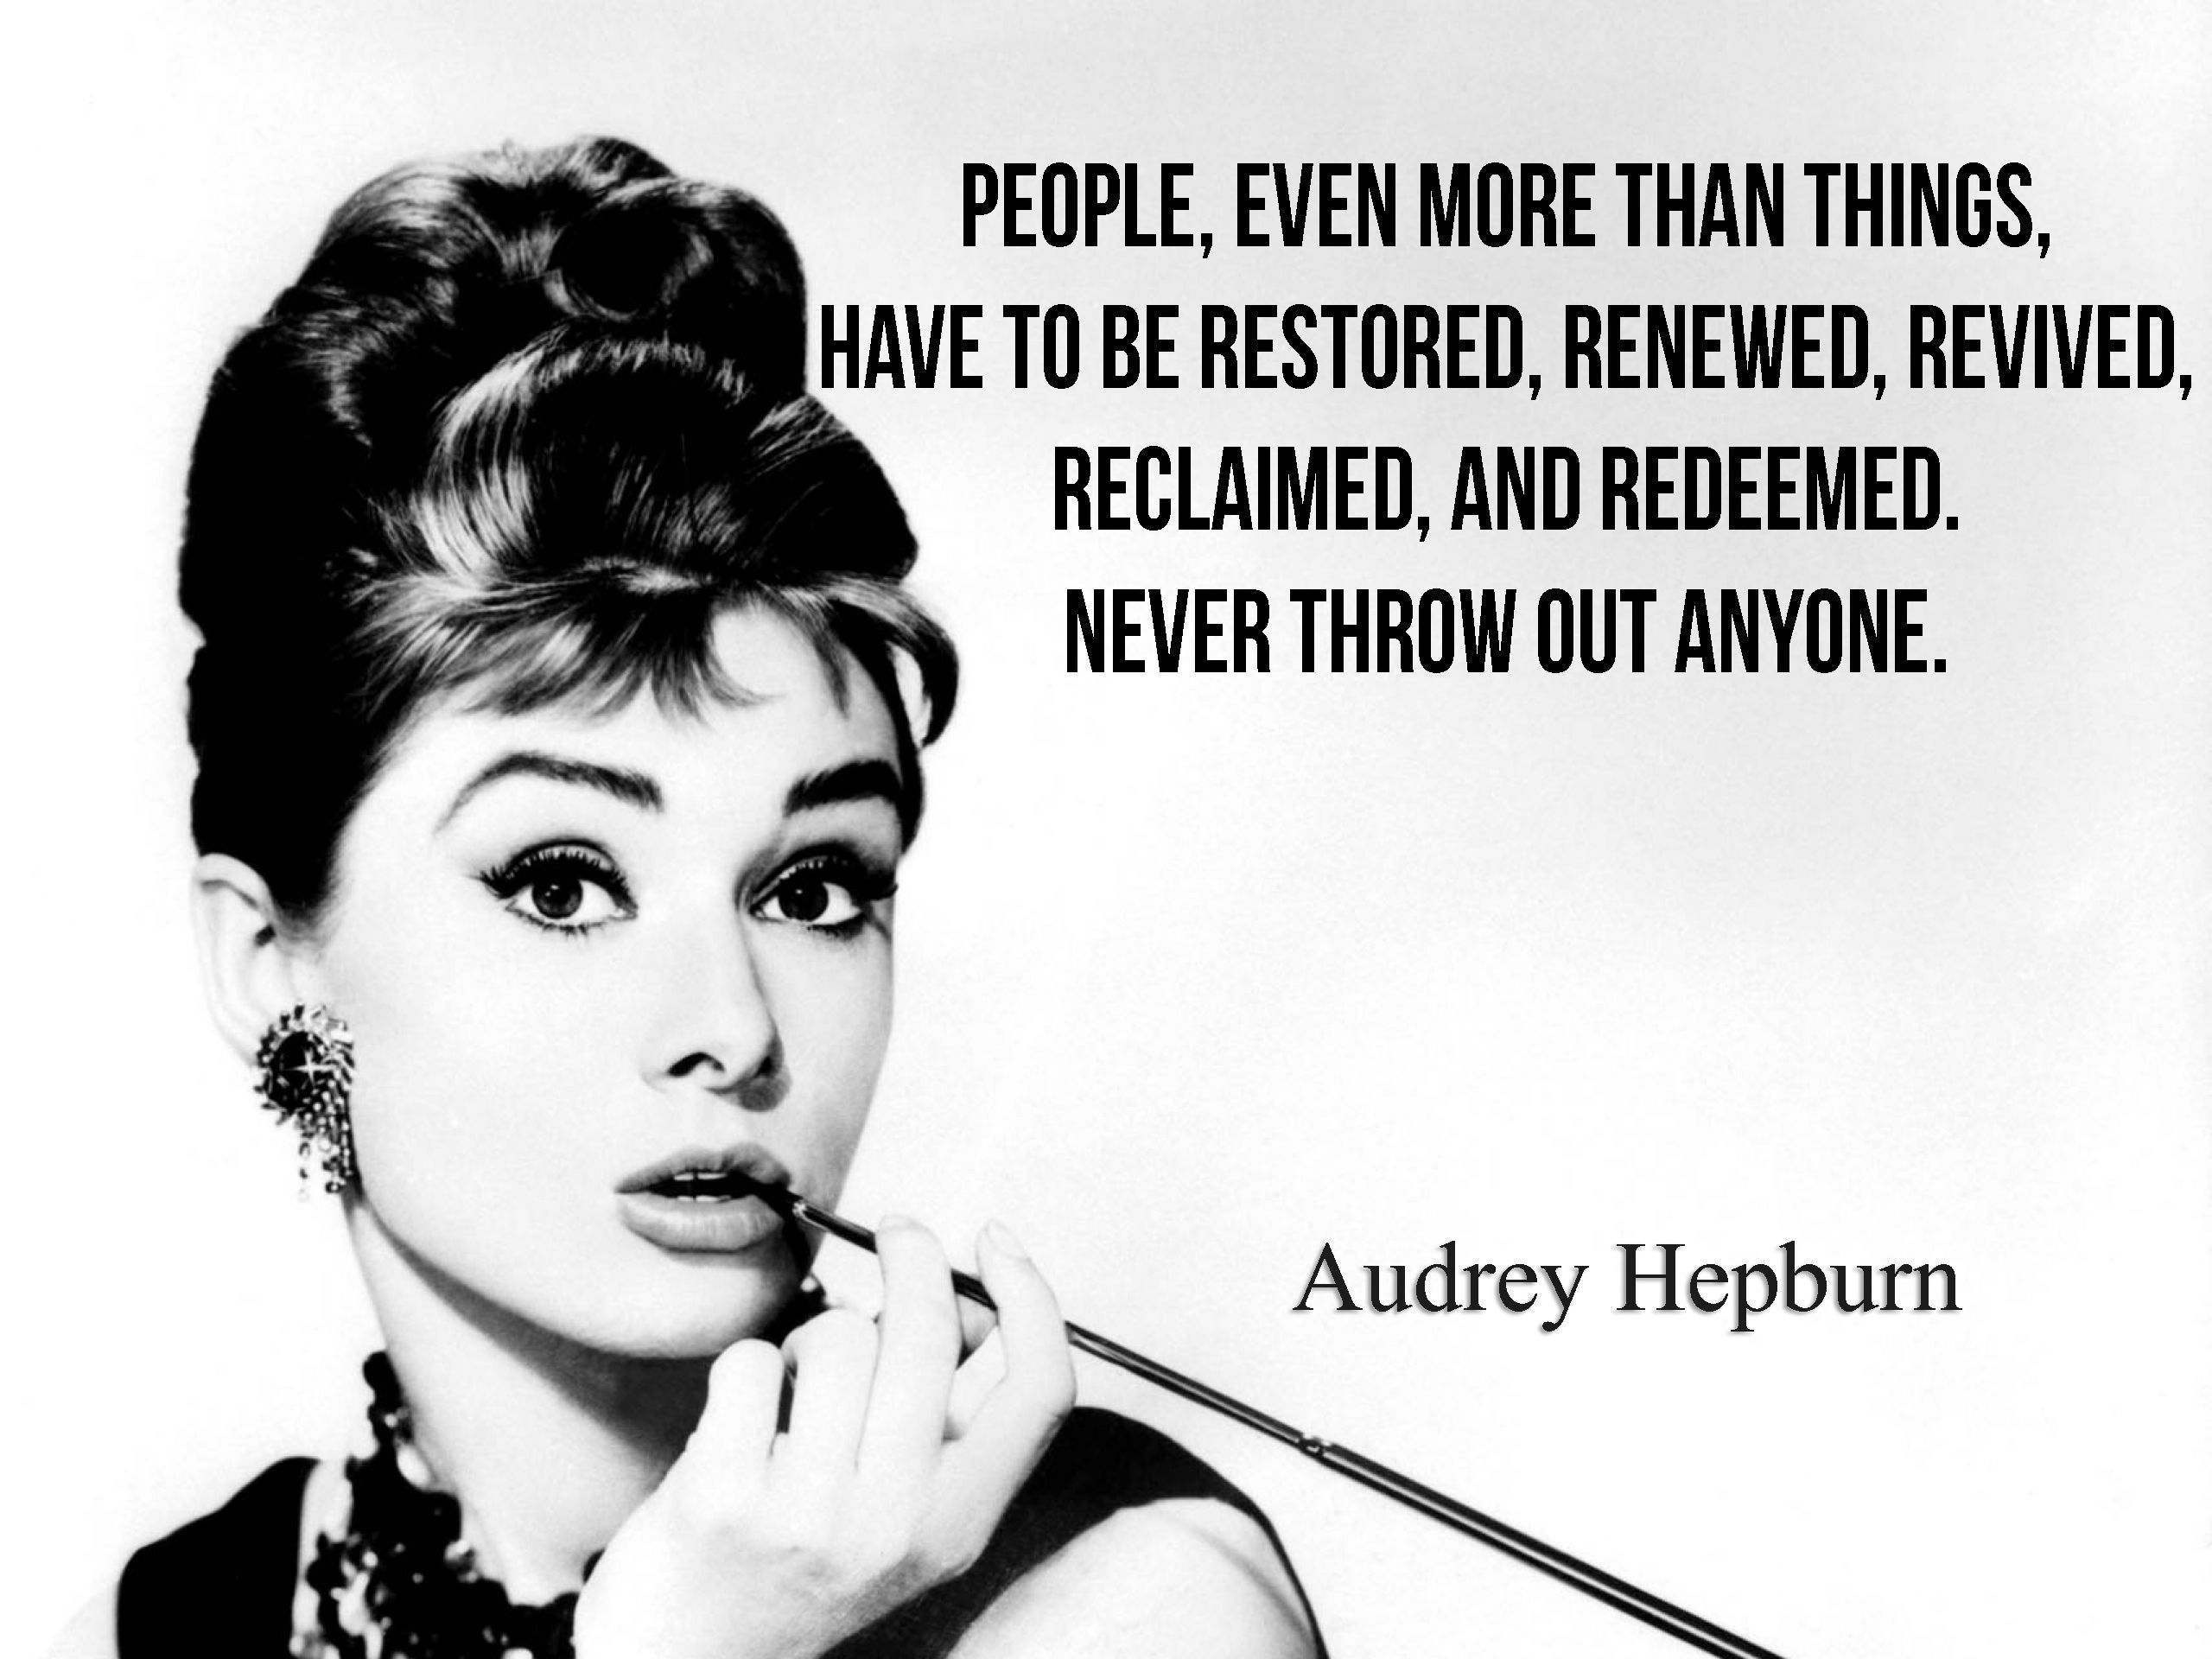 Famous Positive Quotes Famous Audrey Hepburn Quotes  Cool Stuff  Pinterest  Audrey